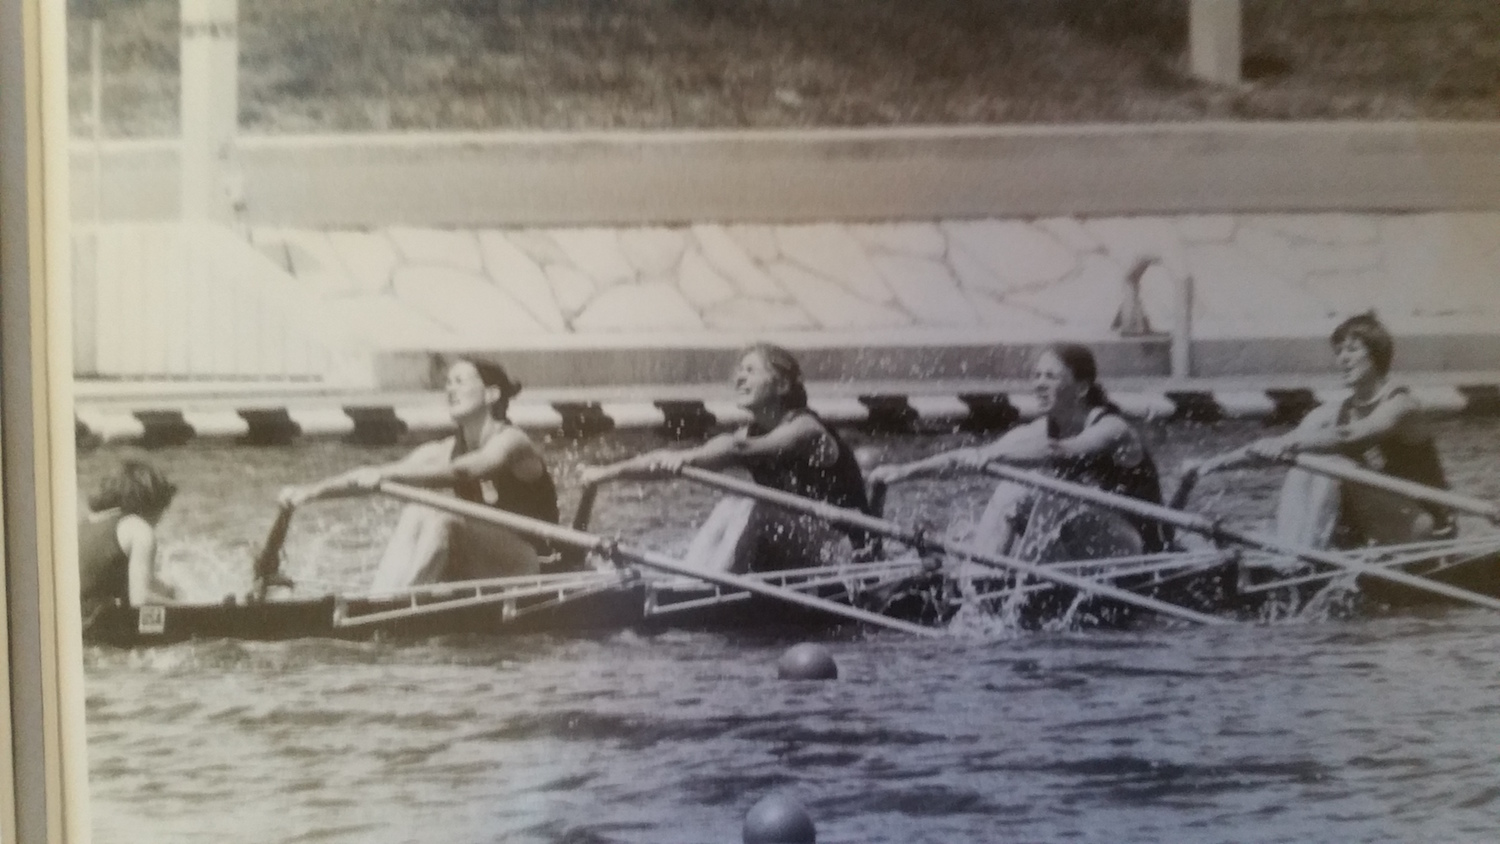 The quad on the way to winning the Petite Final with the 4th fastest time overall in the final racing.